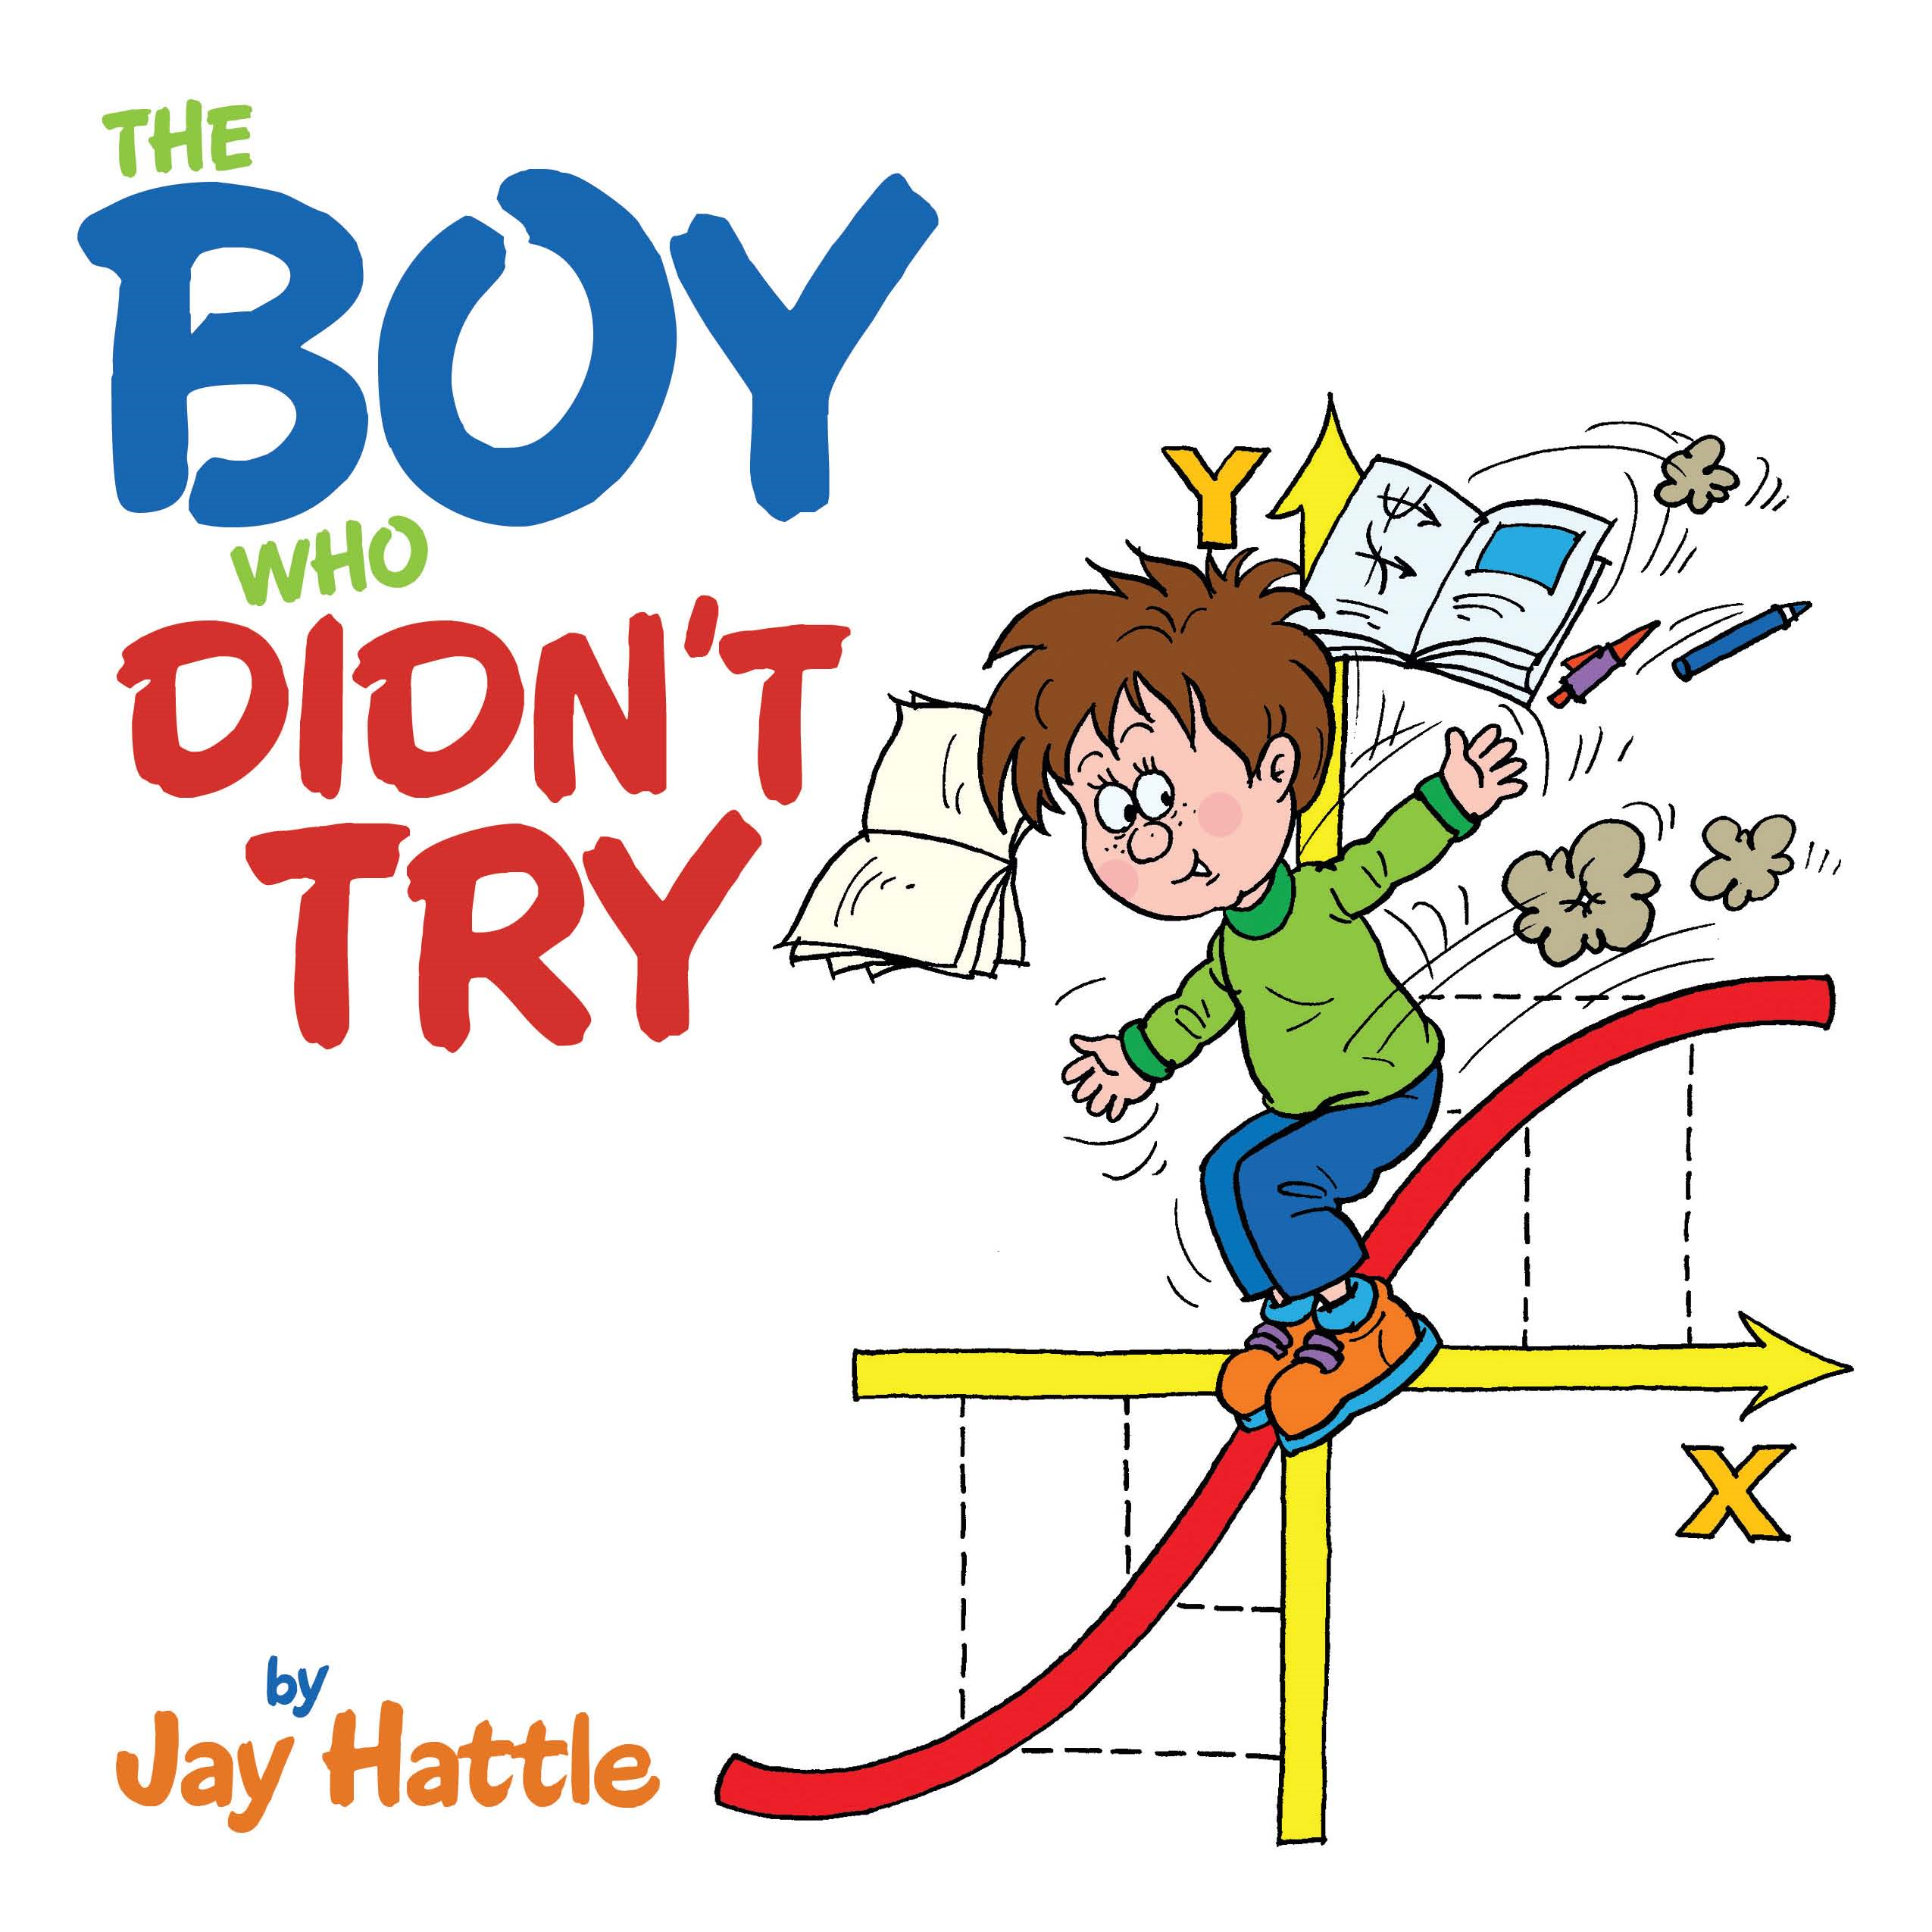 The Boy Who Didn't Try